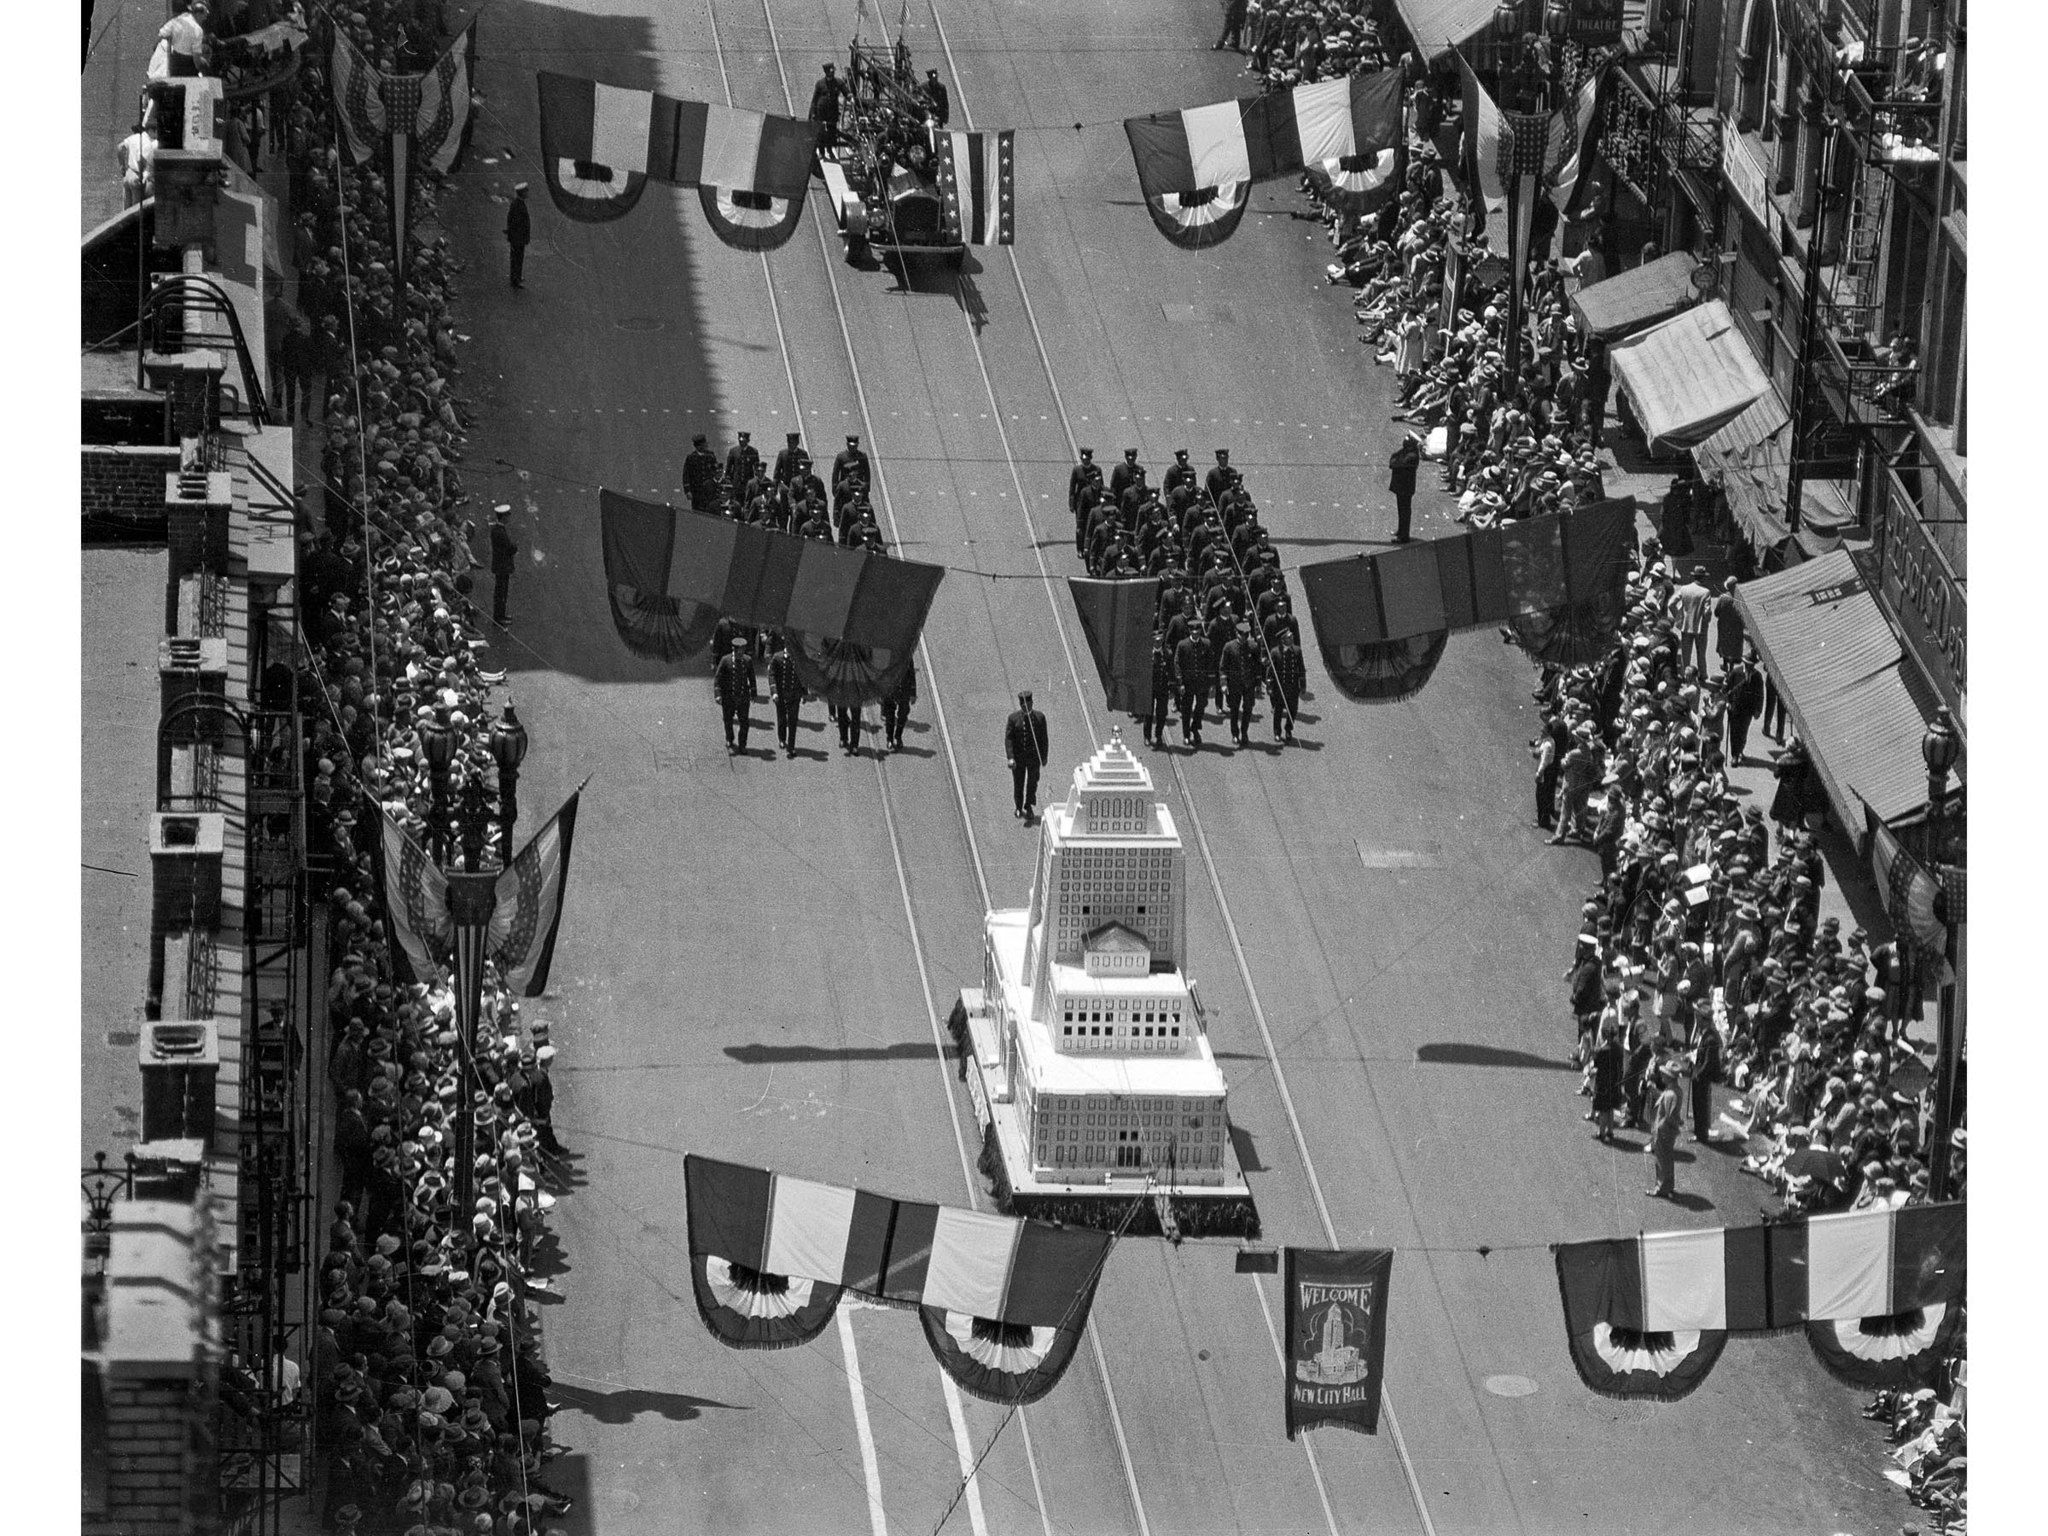 April 26, 1928: Los Angeles Fire Department float featuring a replica of the city hall during dedica